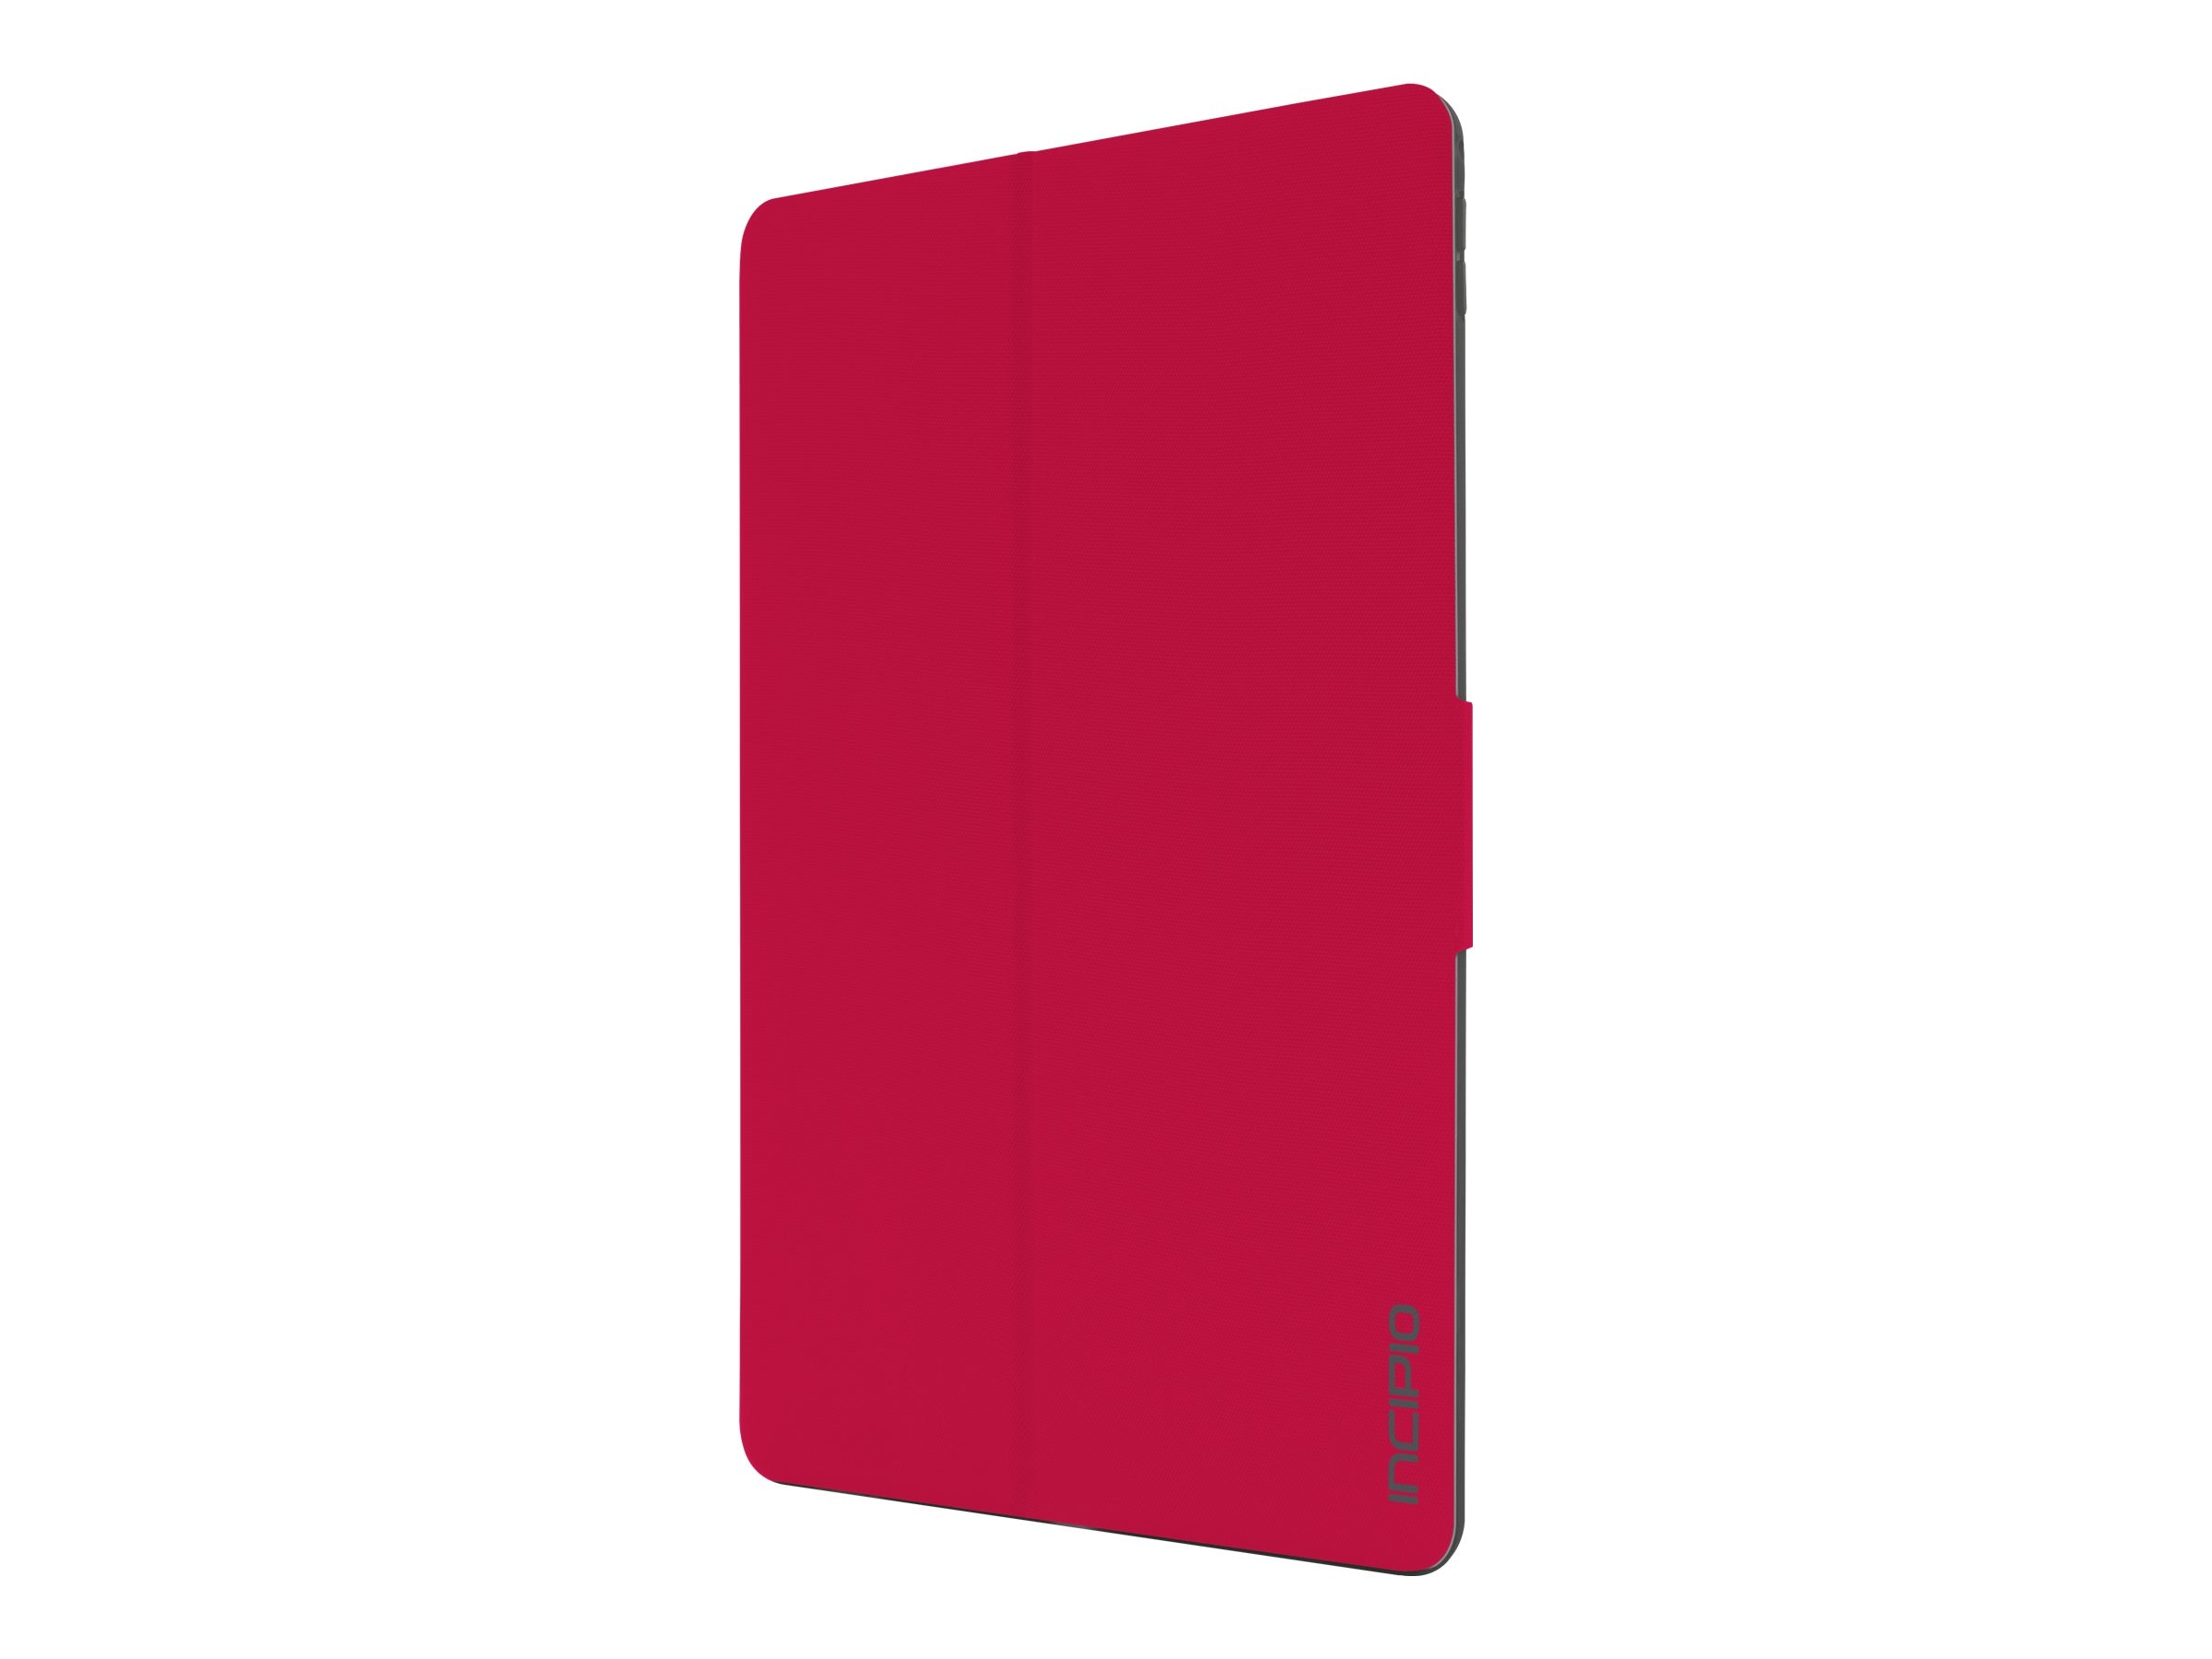 Incipio Clarion Shock Absorbing Translucent Folio for iPad Pro 12.9, Red